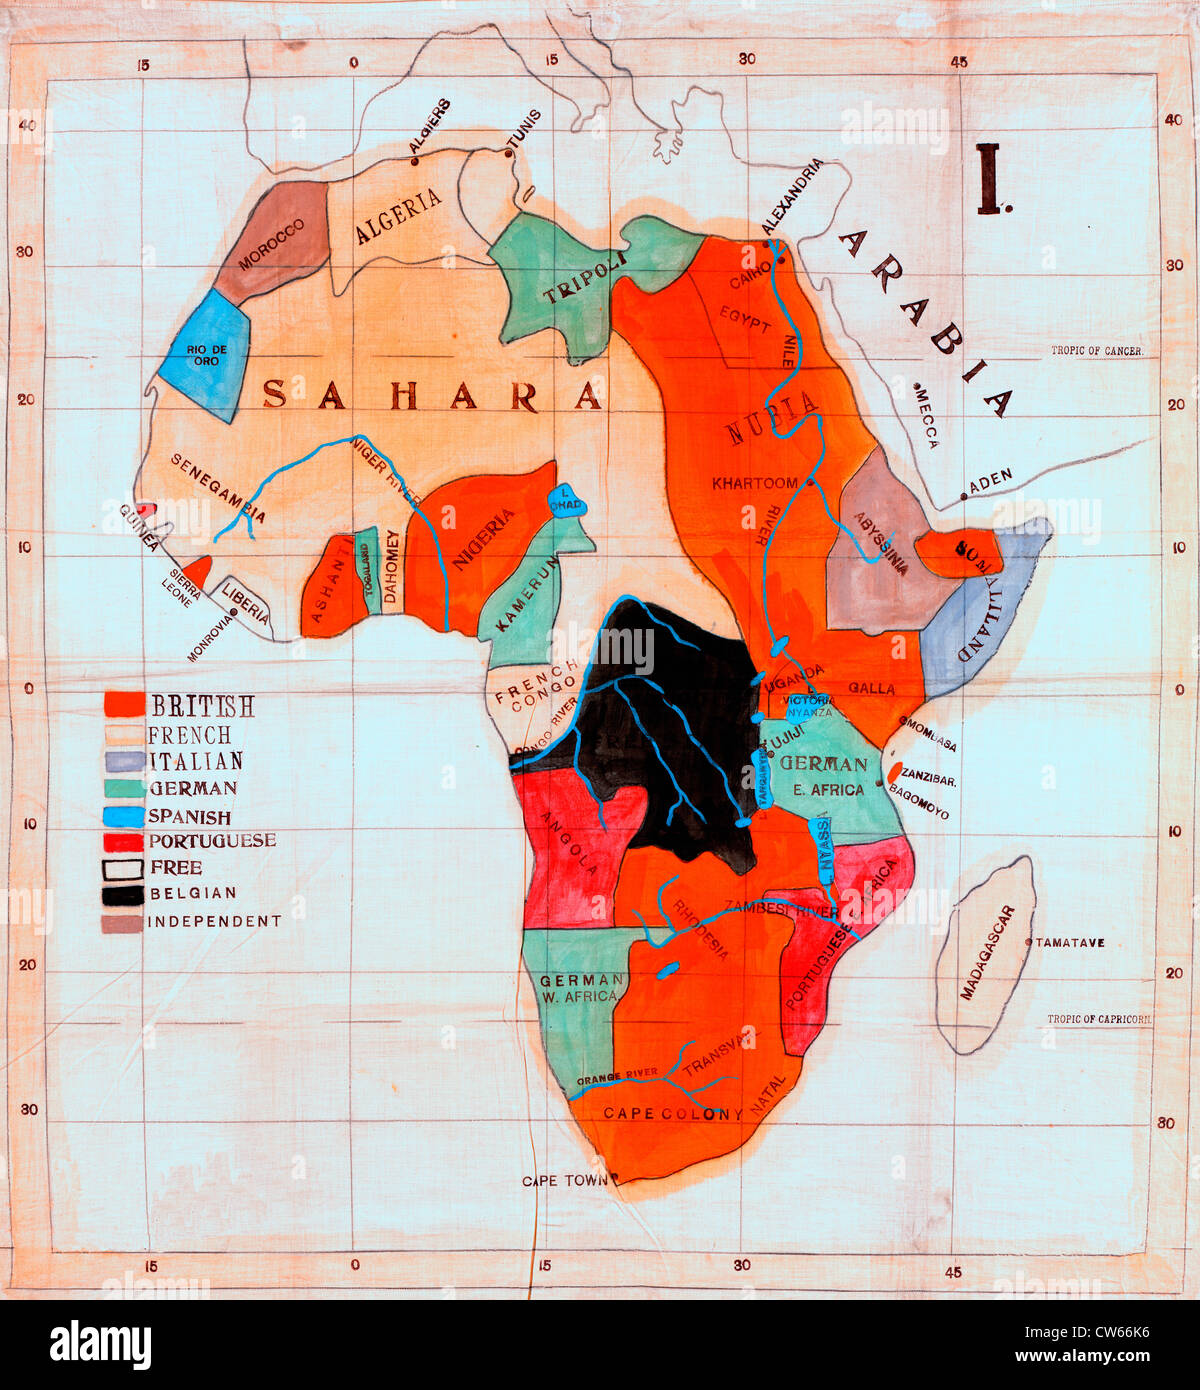 Map of Africa showing European colonies and independent countries